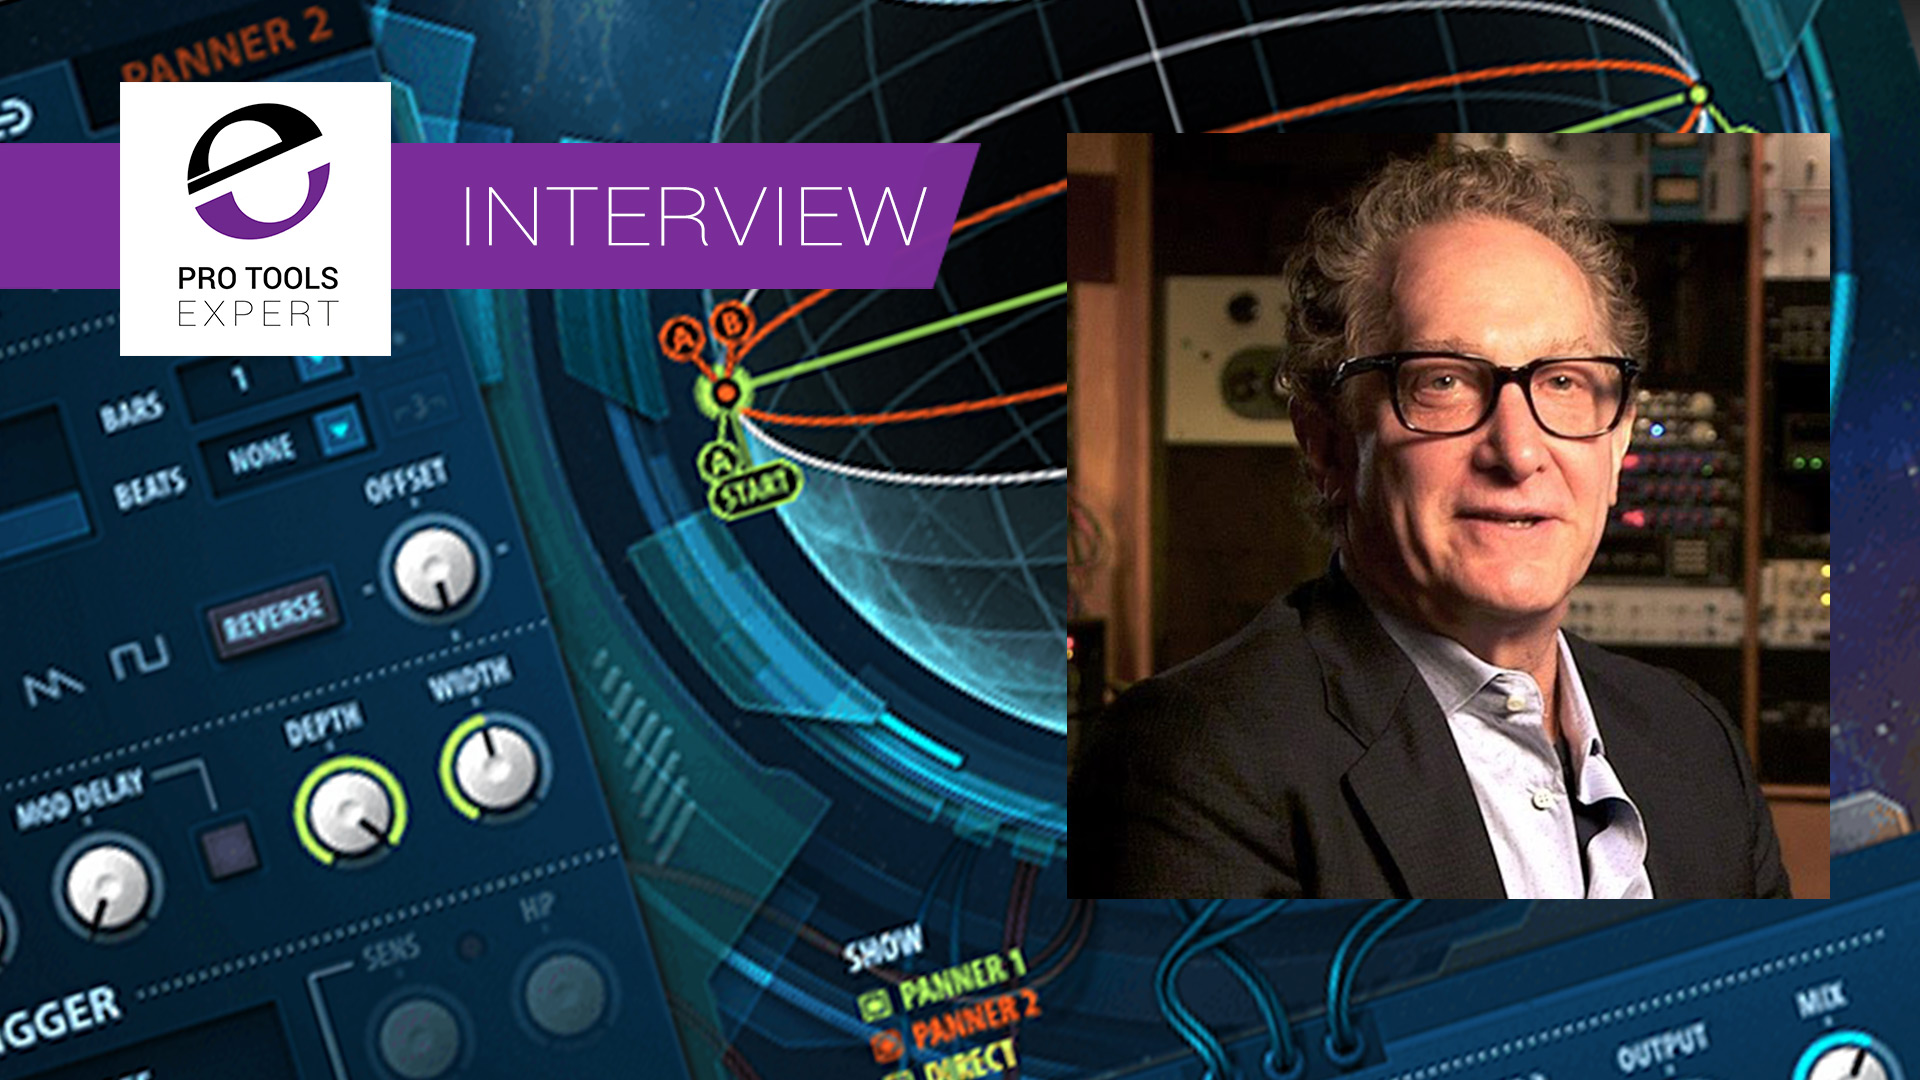 michael-brauer-interview-brauer-motion-plug-in-waves-pro-tools-expert.jpg